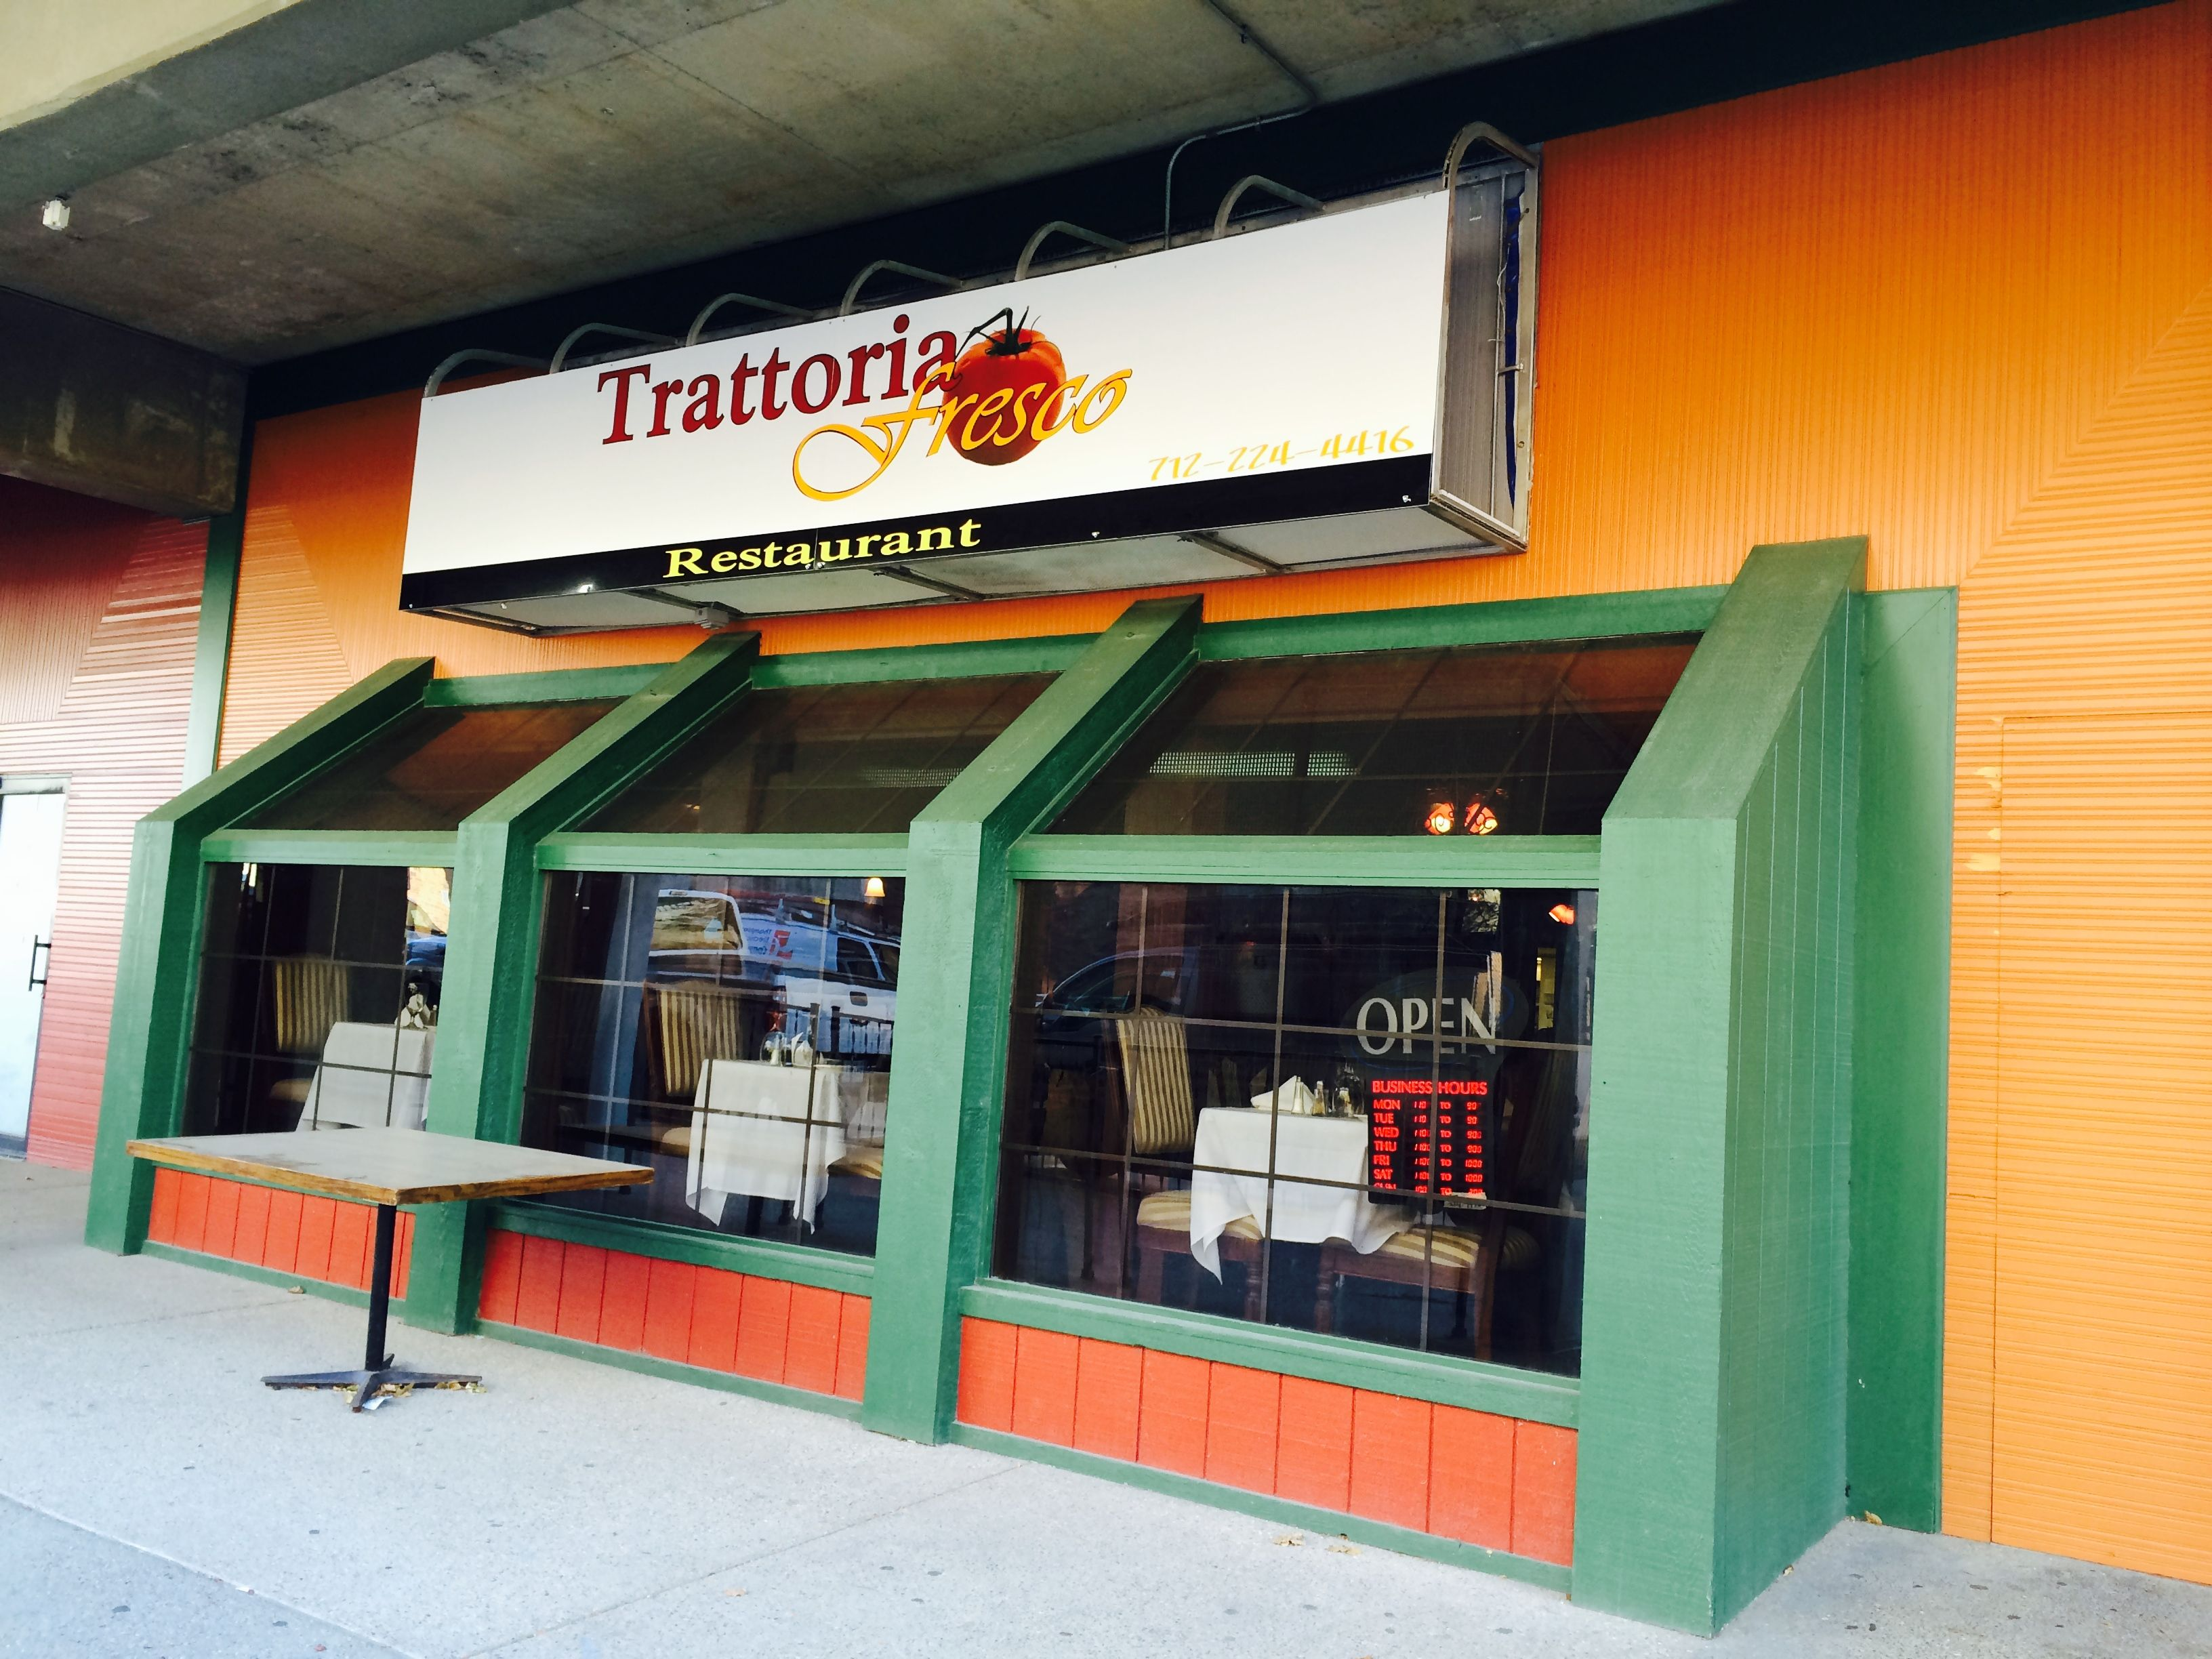 Trattoria Fresco is fresh, familystyle dining at an